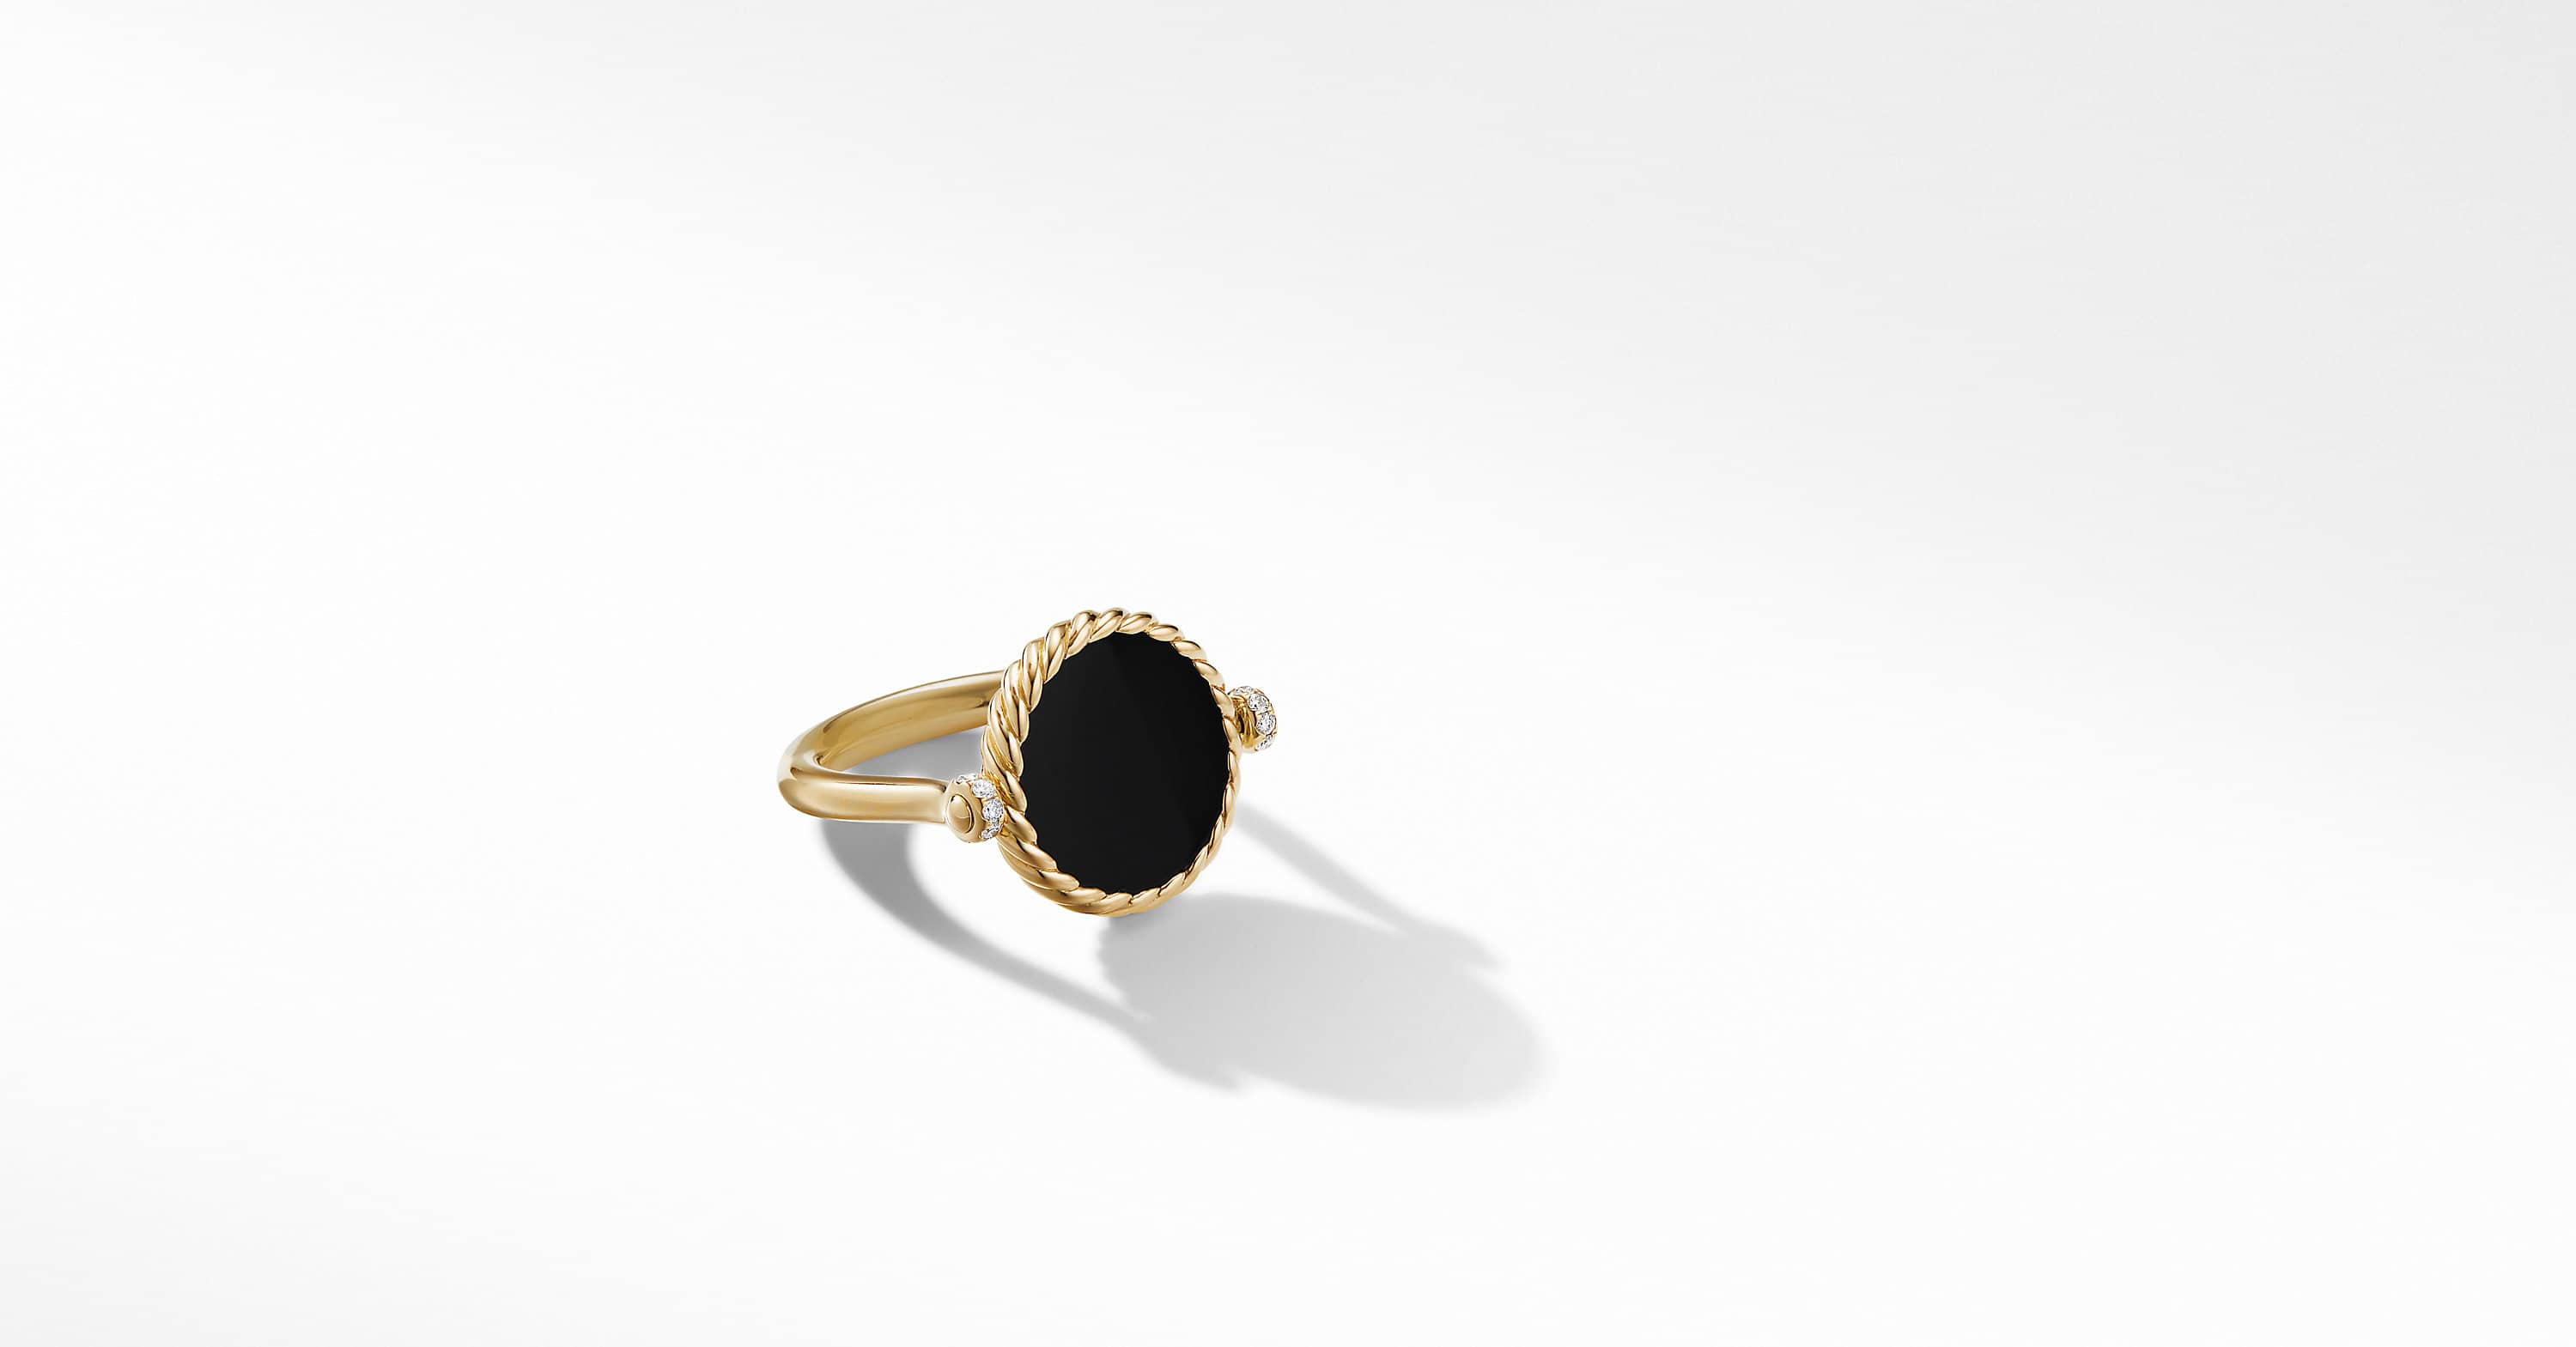 DY Elements Swivel Ring in 18K Yellow Gold with Diamonds, 15mm